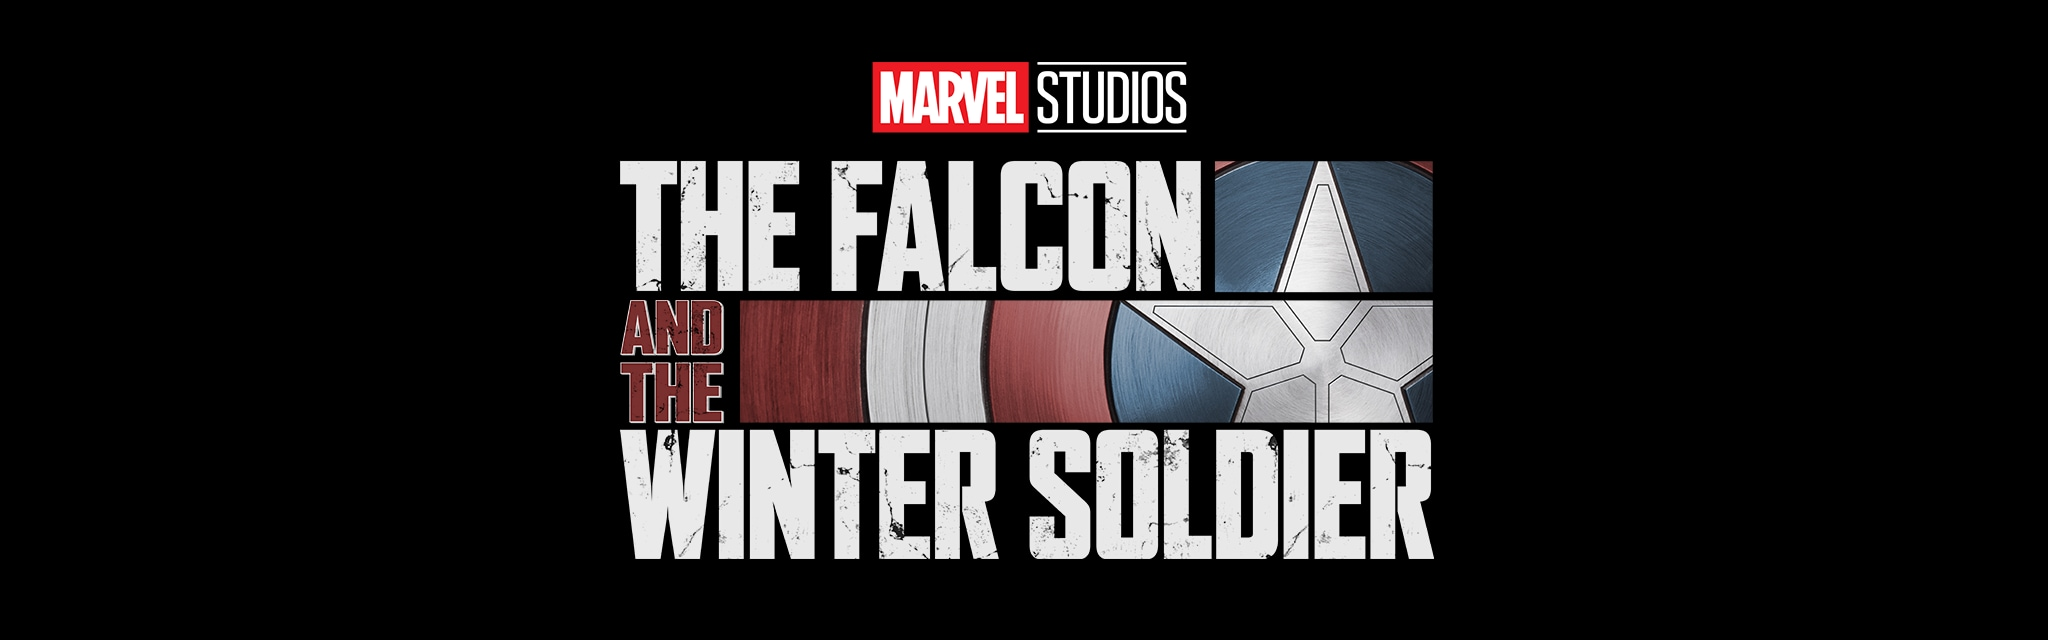 Marvel Studios   The Falcon and the Winter Soldier